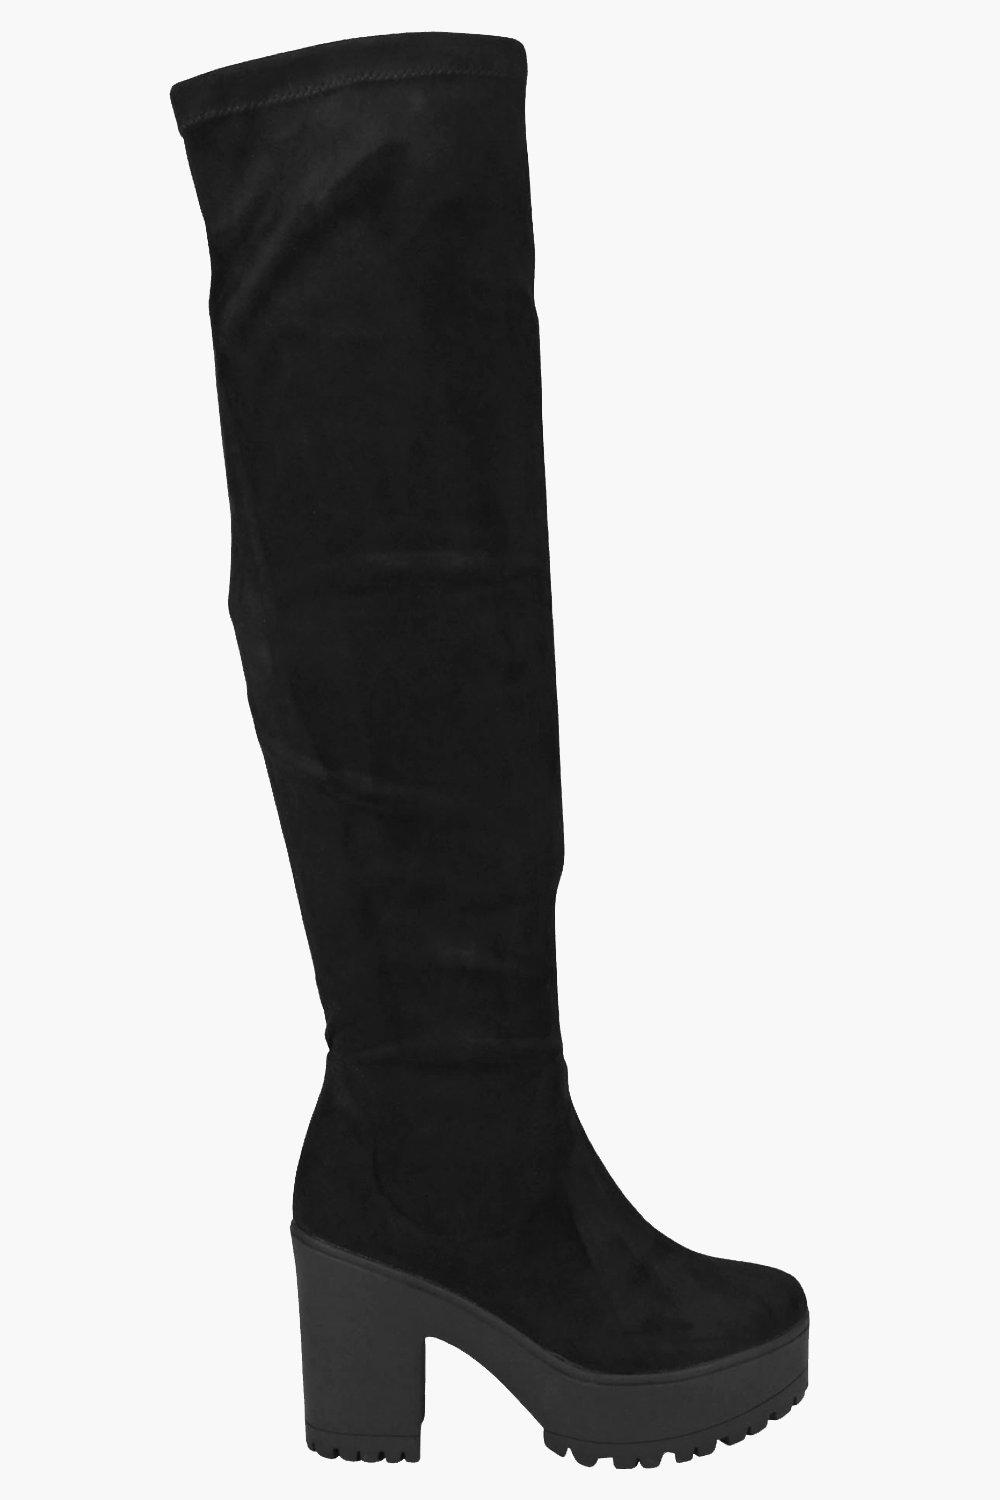 Maya Over Knee Block Heel Cleated Boots